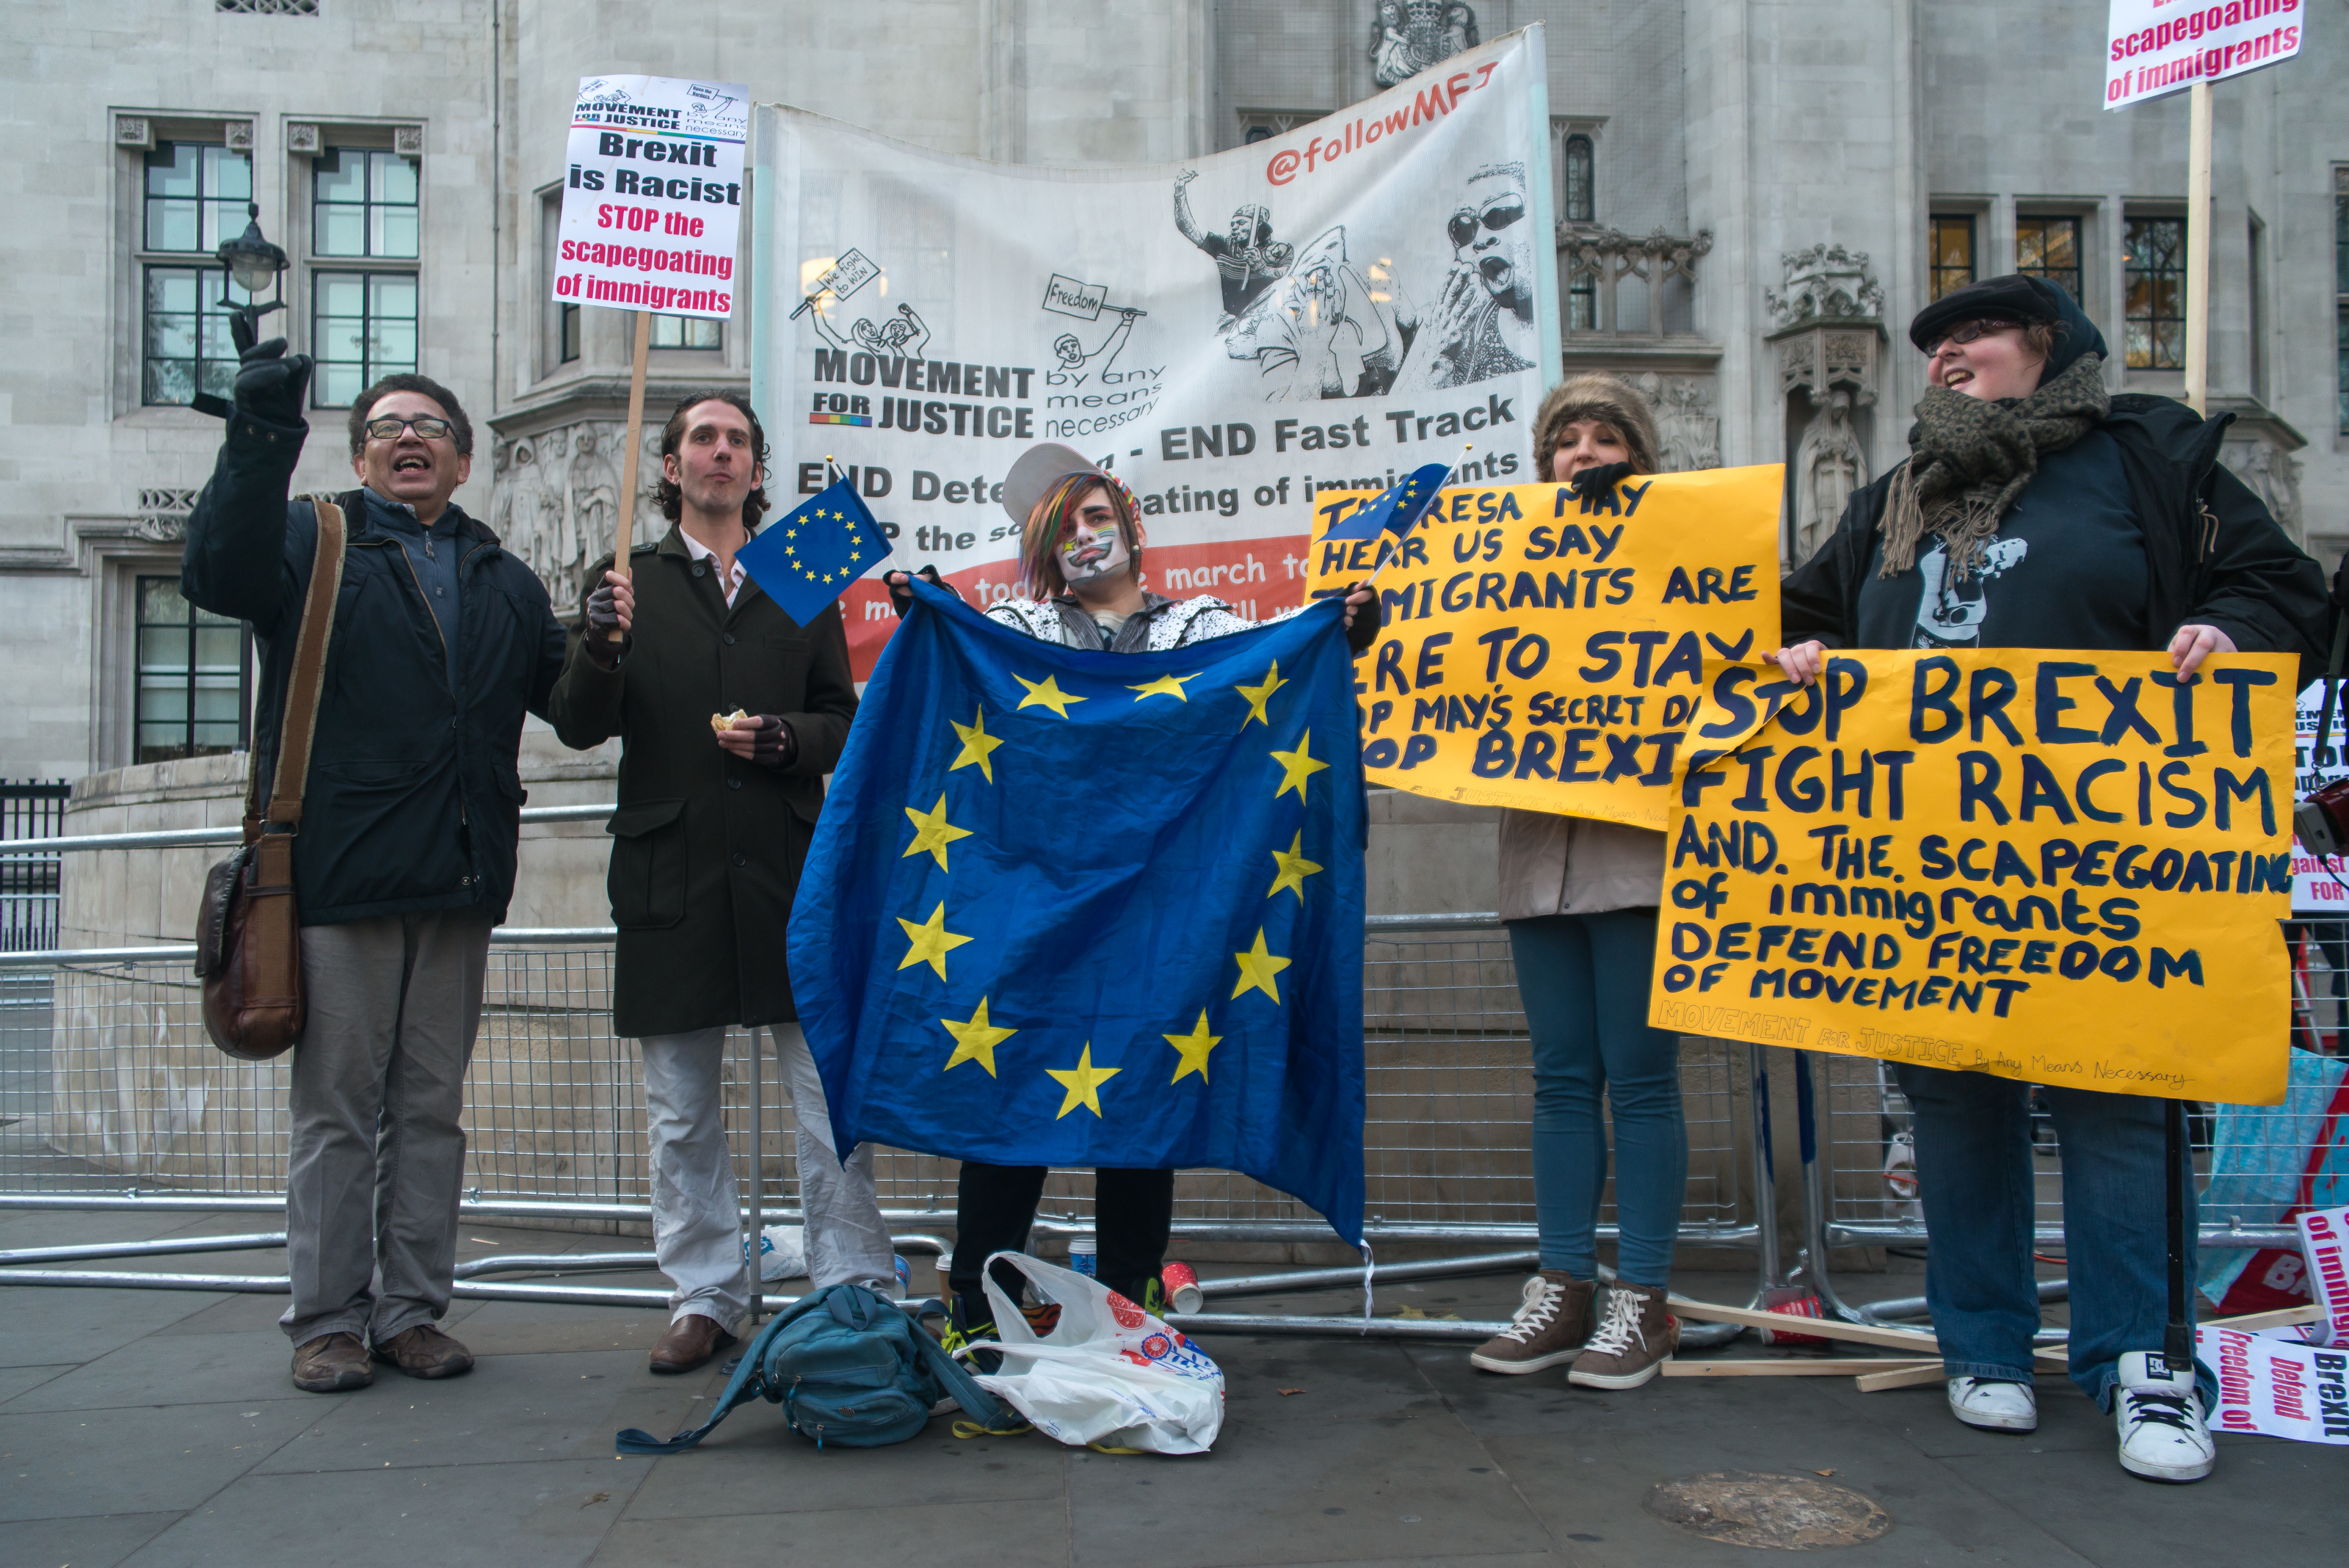 Anti-brexiters and Brexiters, clash outside the Supreme